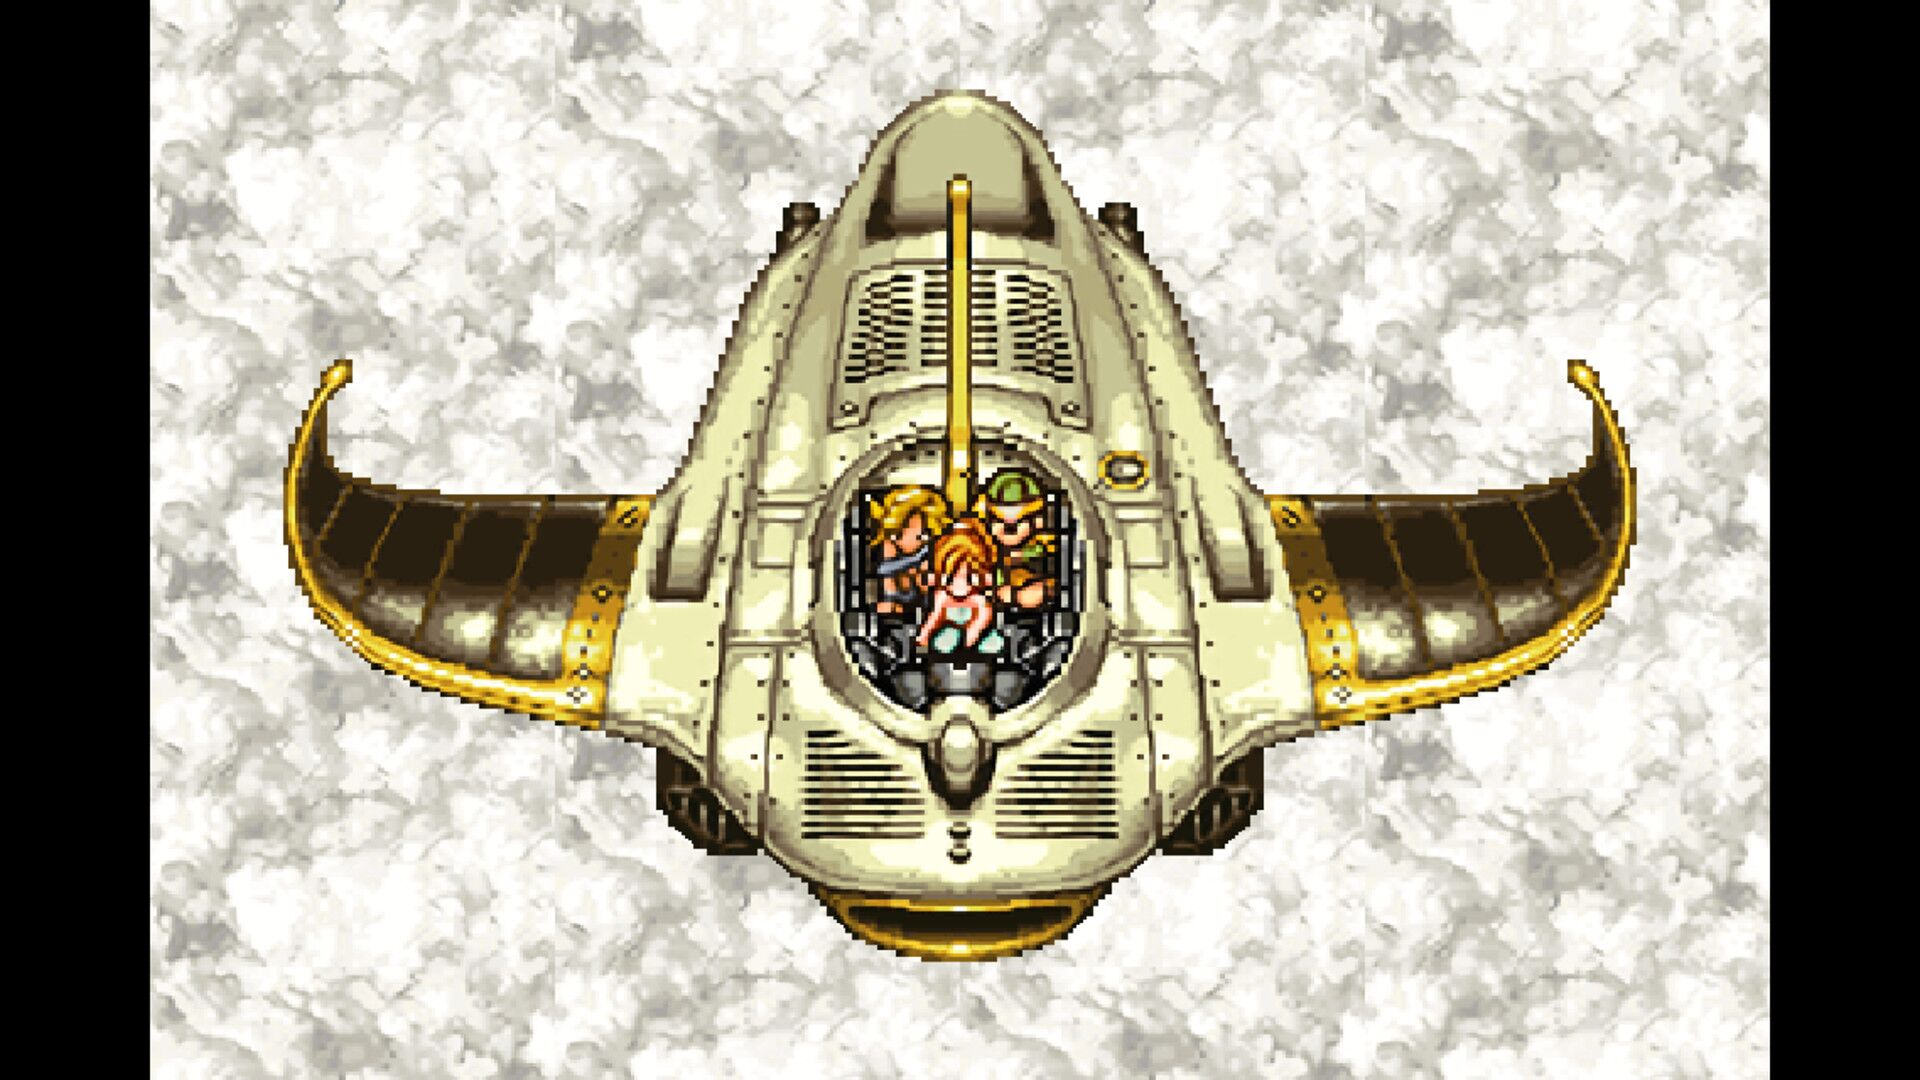 Chrono Trigger's PC launch receives our Warner Bros. Award for Bad PC Port